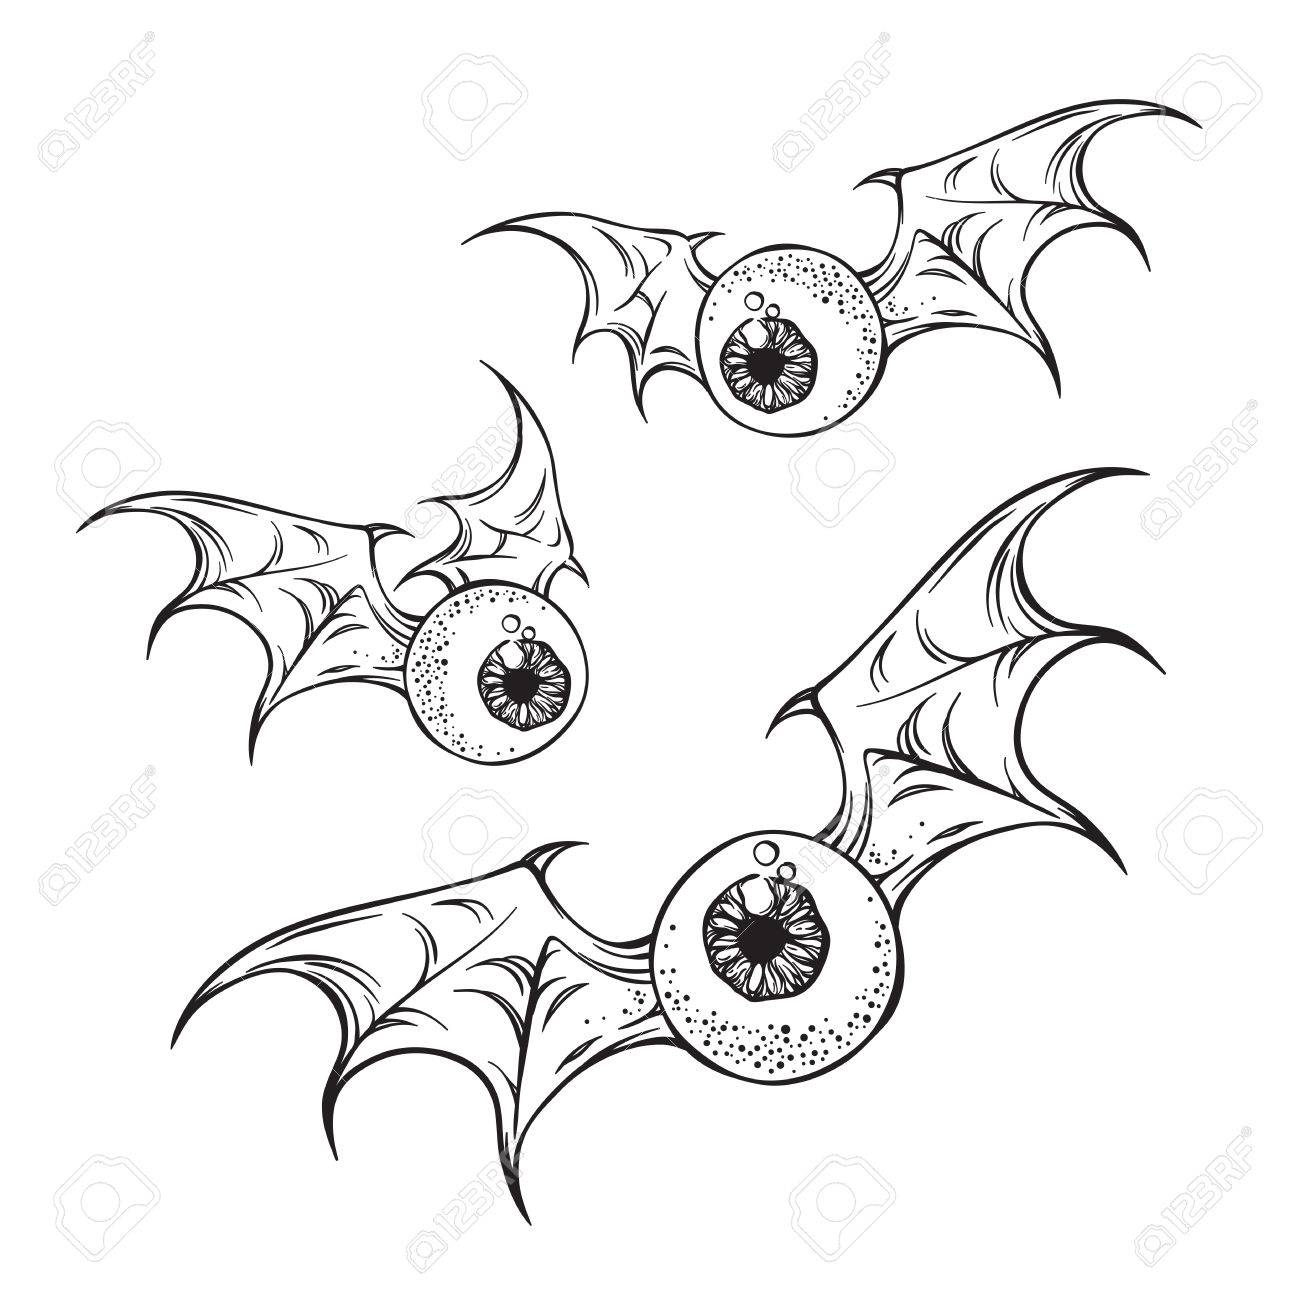 1300x1300 Flying Eyeballs With Creepy Demon Wings Black And White Halloween